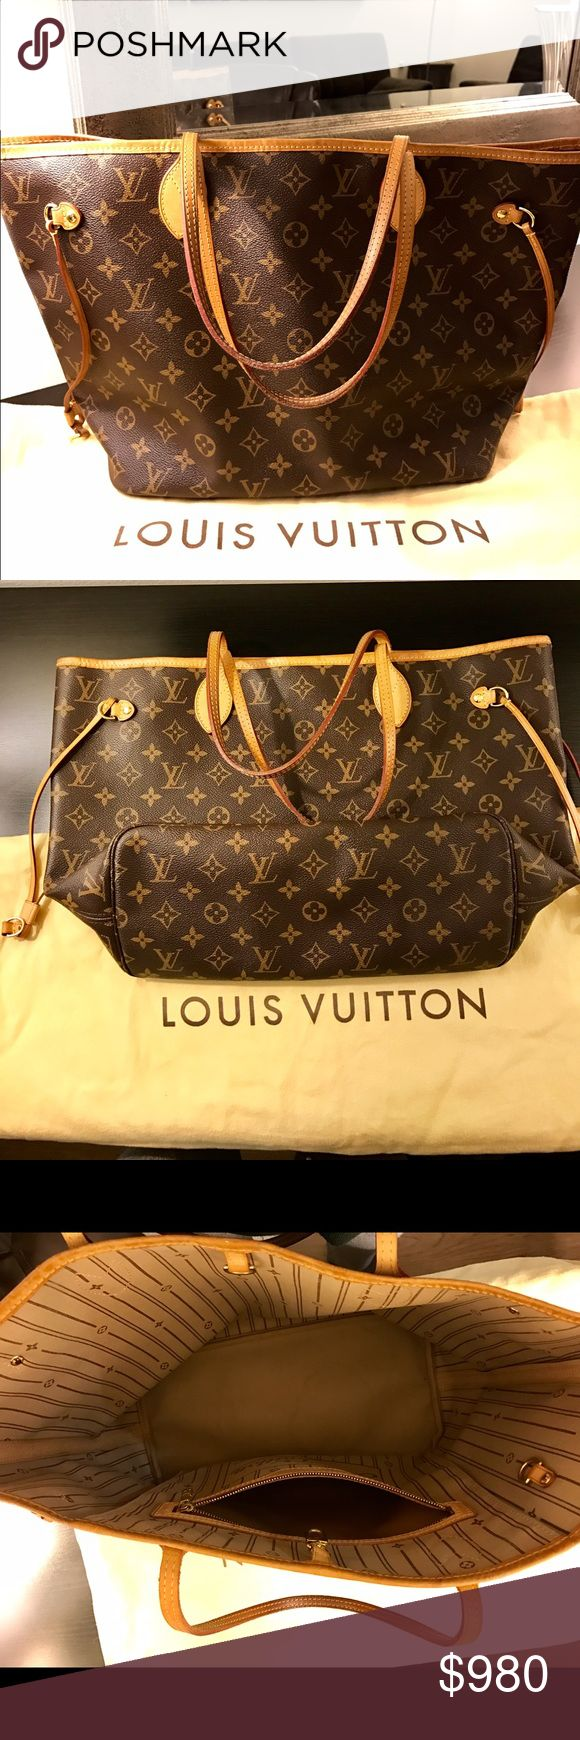 Louis Vuitton Neverfull MM Louis Vuitton Neverfull MM (medium size) in Monogram. Very gently used, signs of wear only inside on the lining. Comes with original dust bad. Purchase personally by me in LV boutique in Berlin. All my shoes, bags and clothes are 100% authentic! ☝️ No trade Louis Vuitton Bags Shoulder Bags